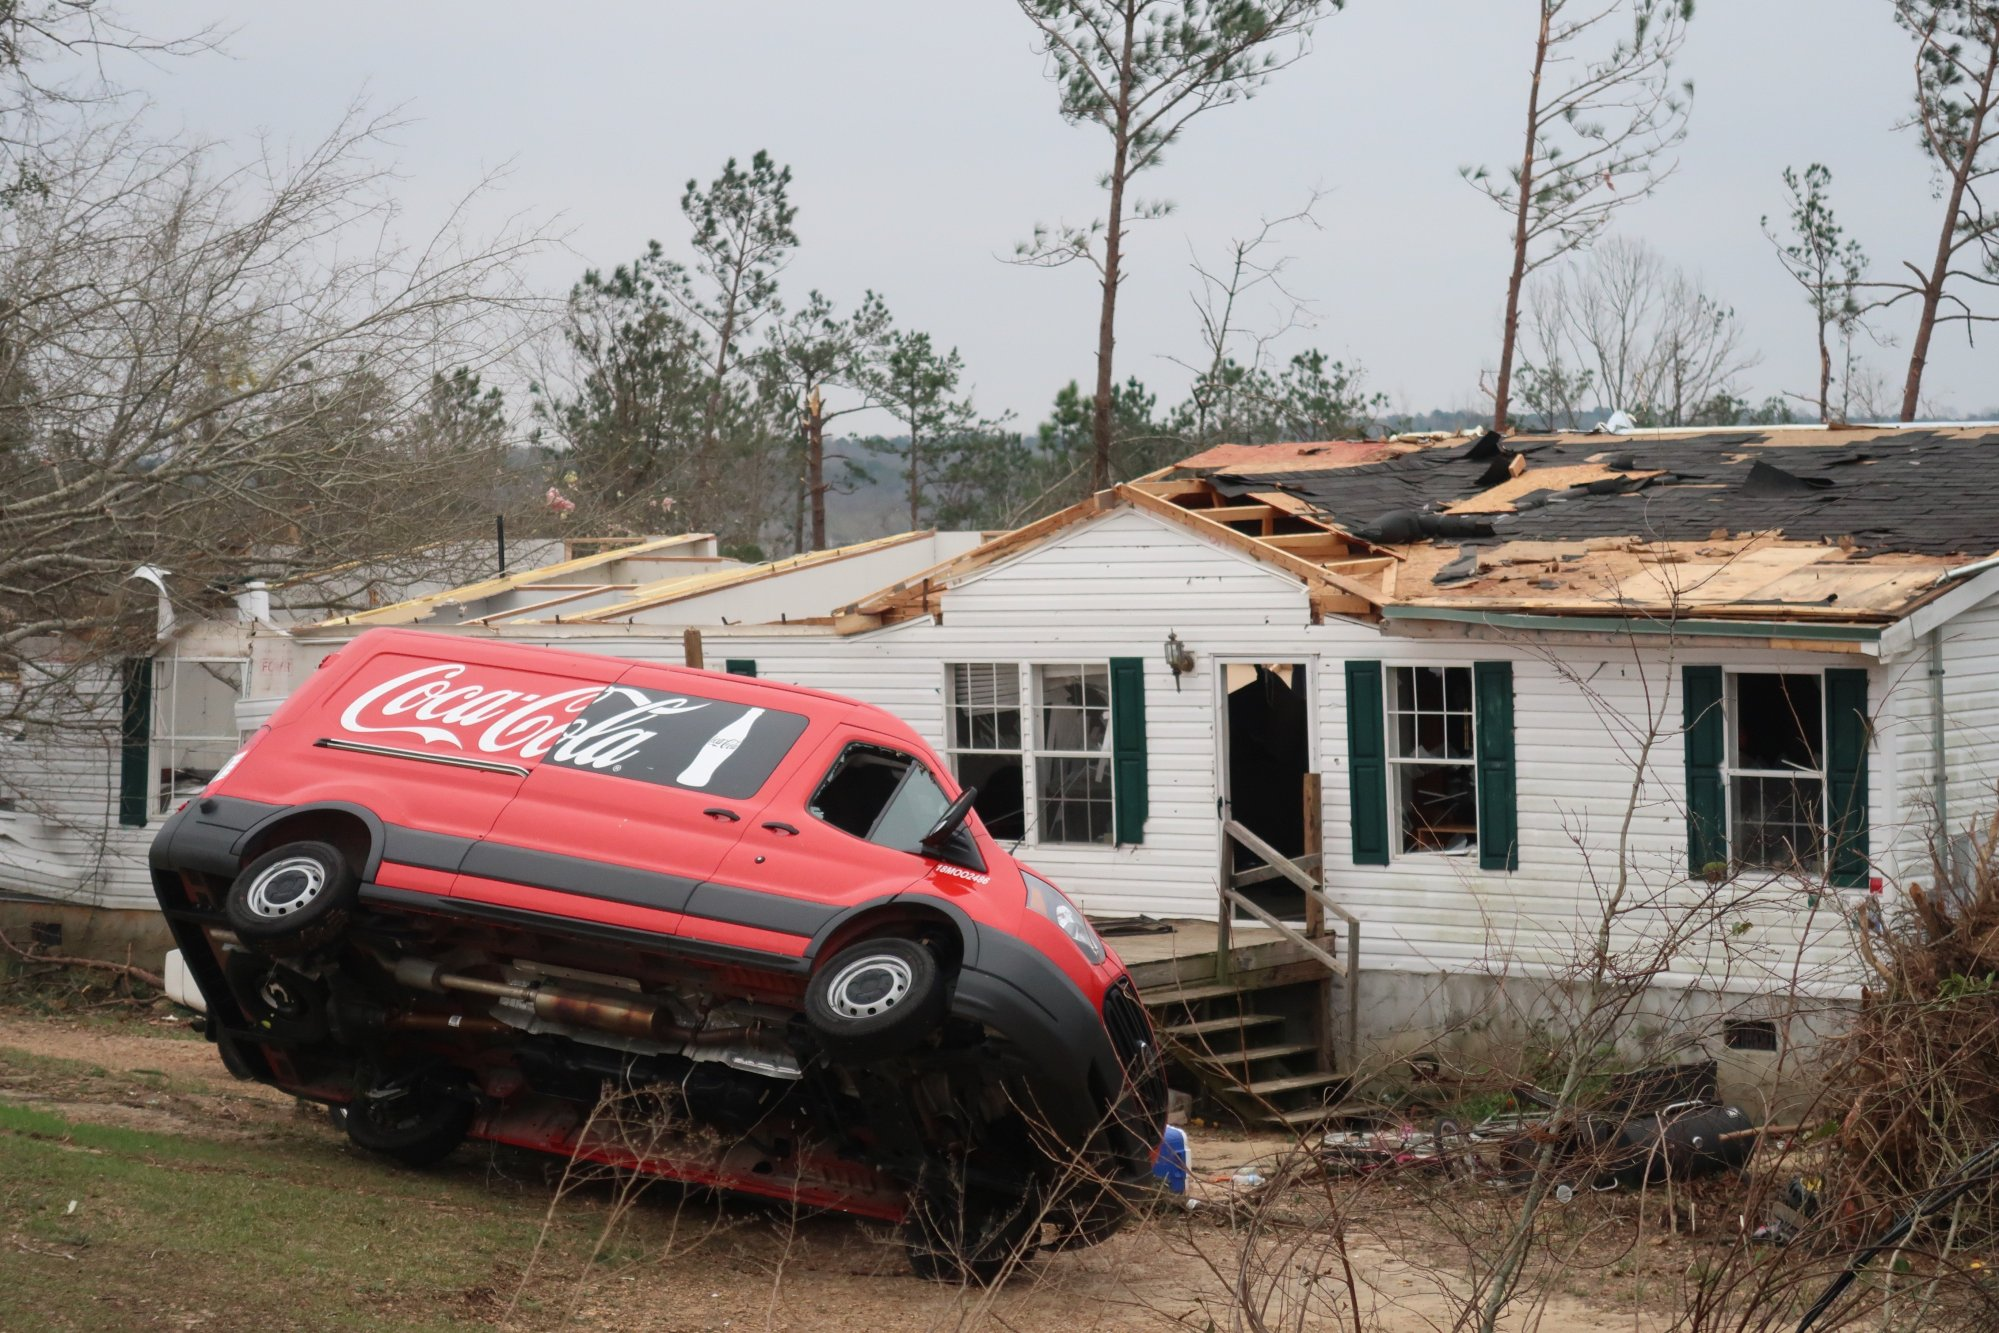 It appears that some people had only a five-minute warning Sunday afternoon before tornadoes ripped through the region.dation for mobile homes are scattered everywhere.